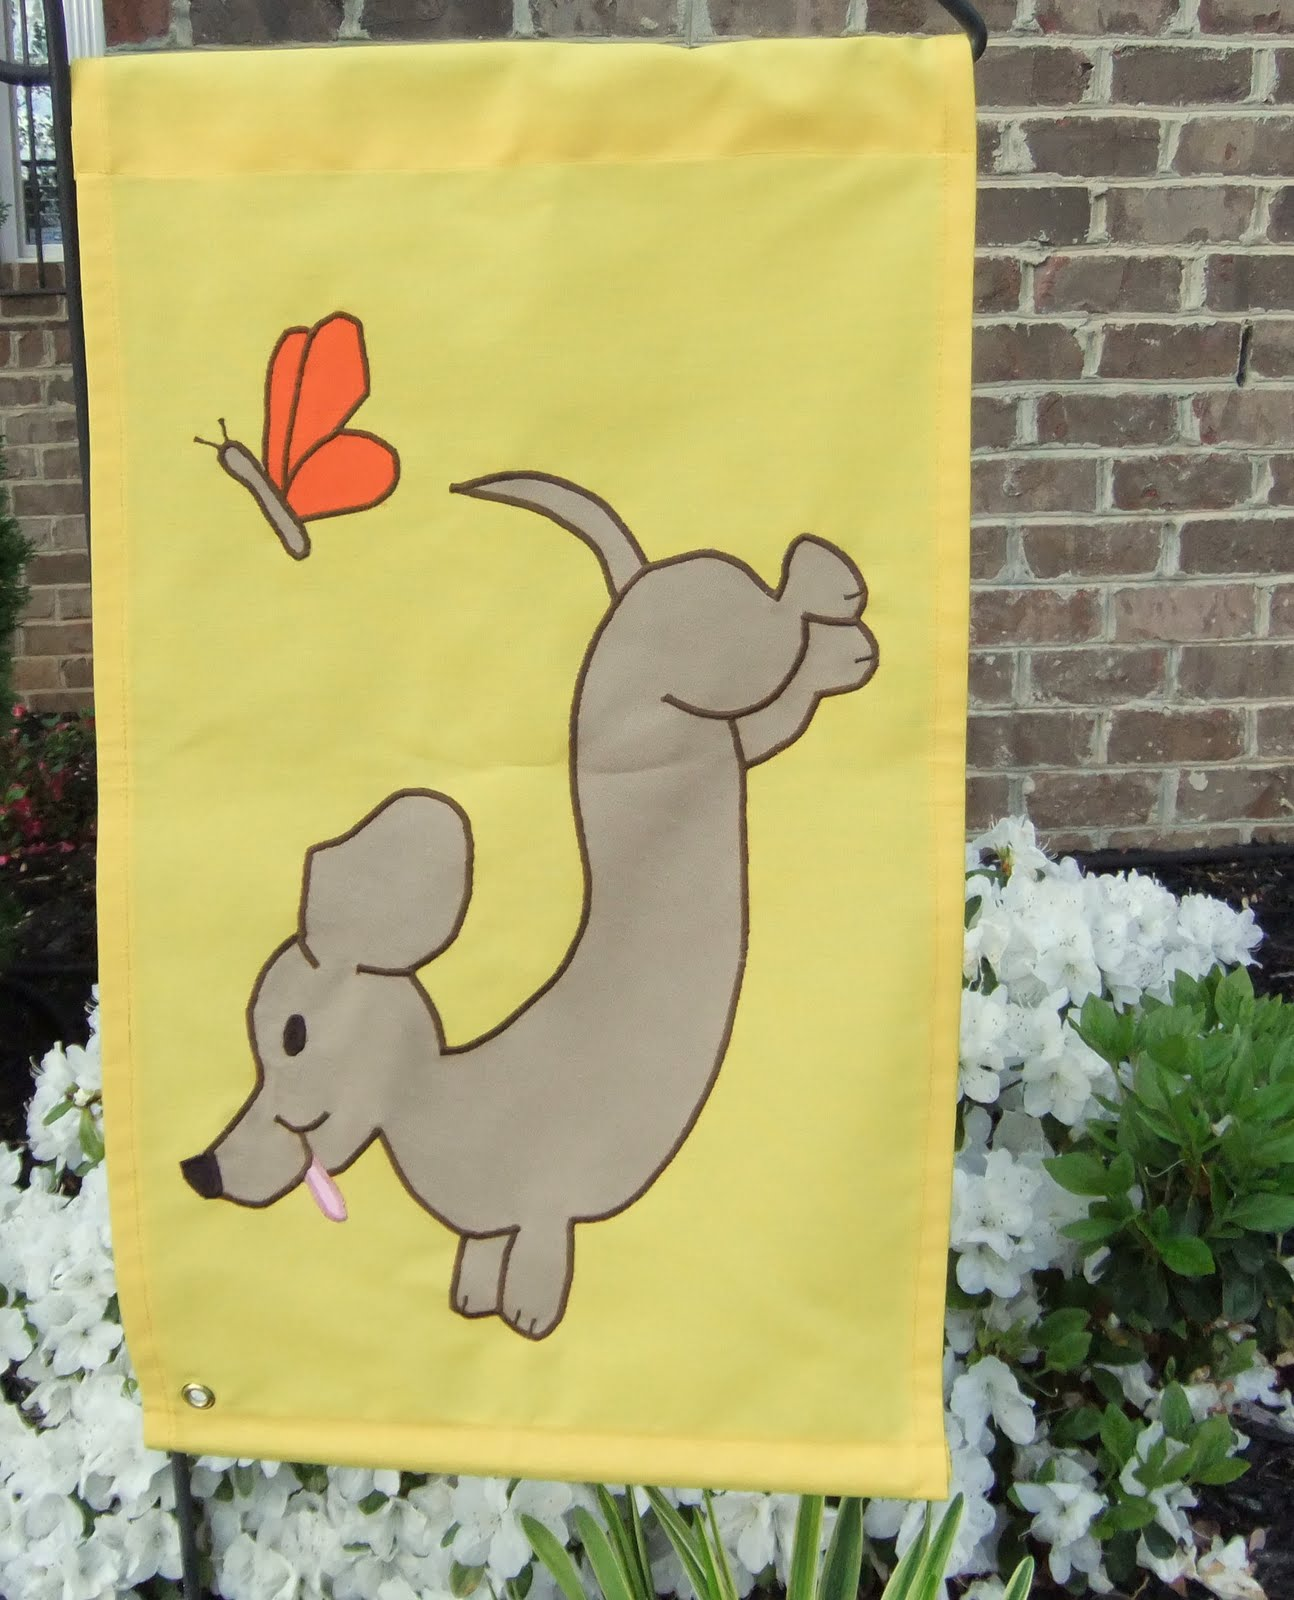 Dachshund Garden Flags But Bigger!!